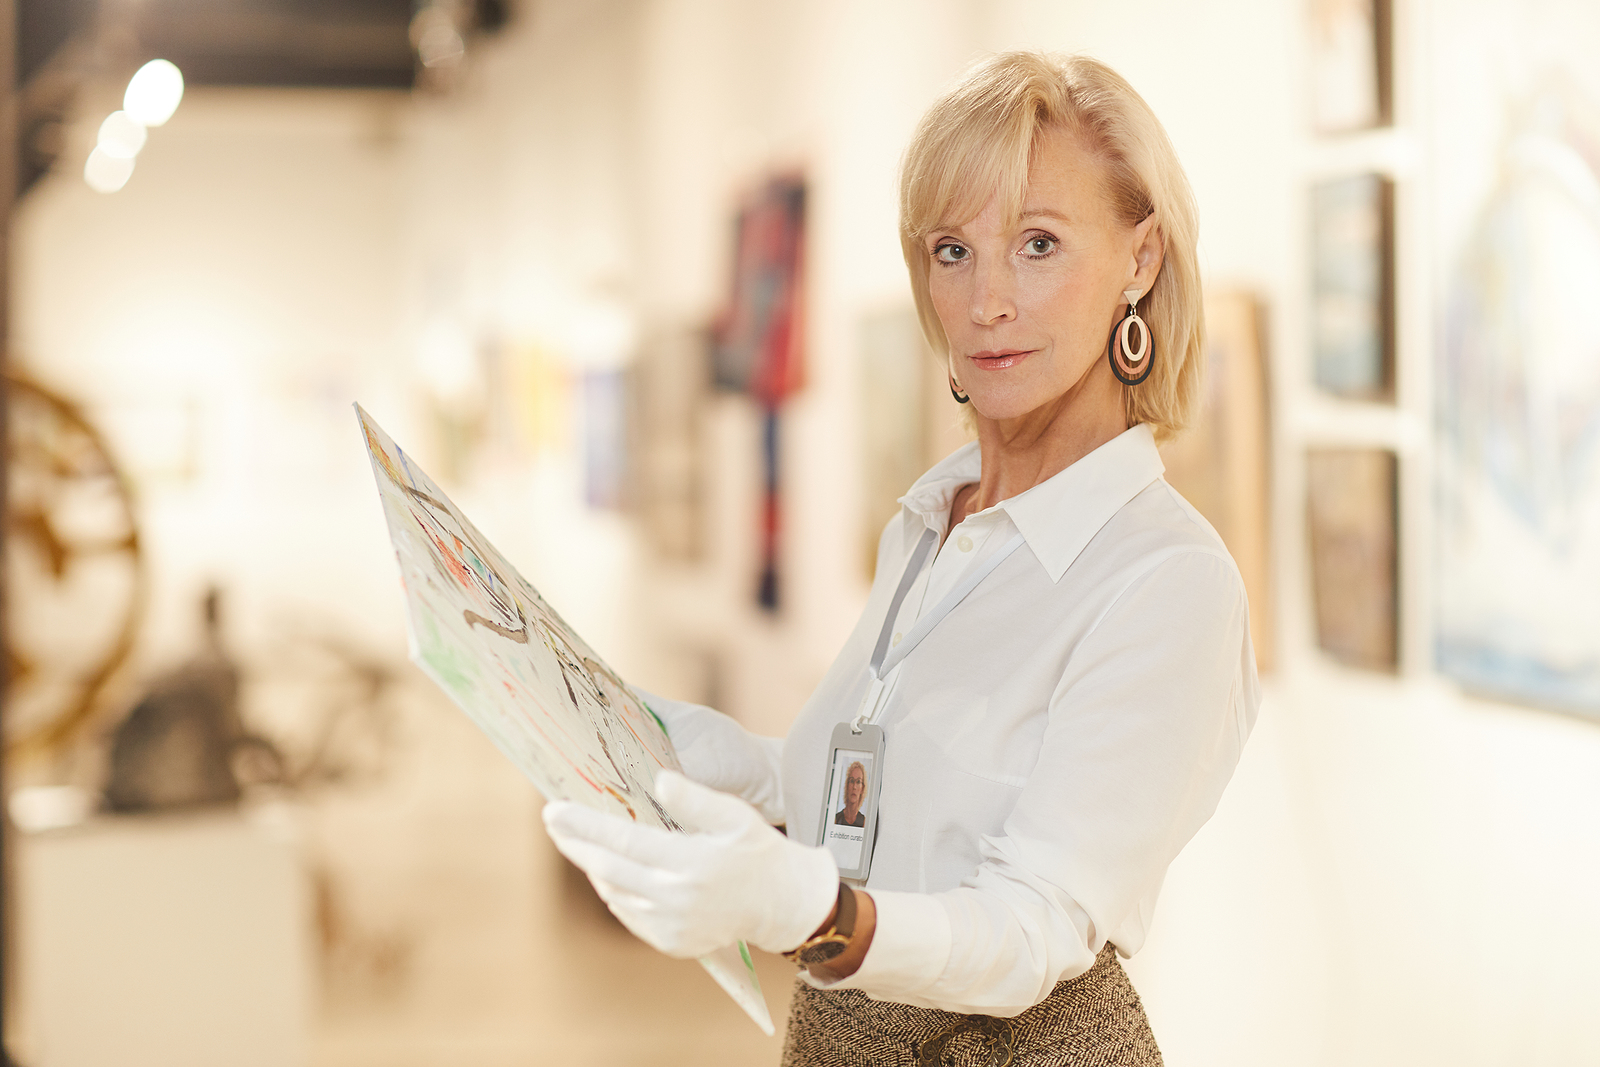 What Does an Art Handler Do, and Why Should You Know That?